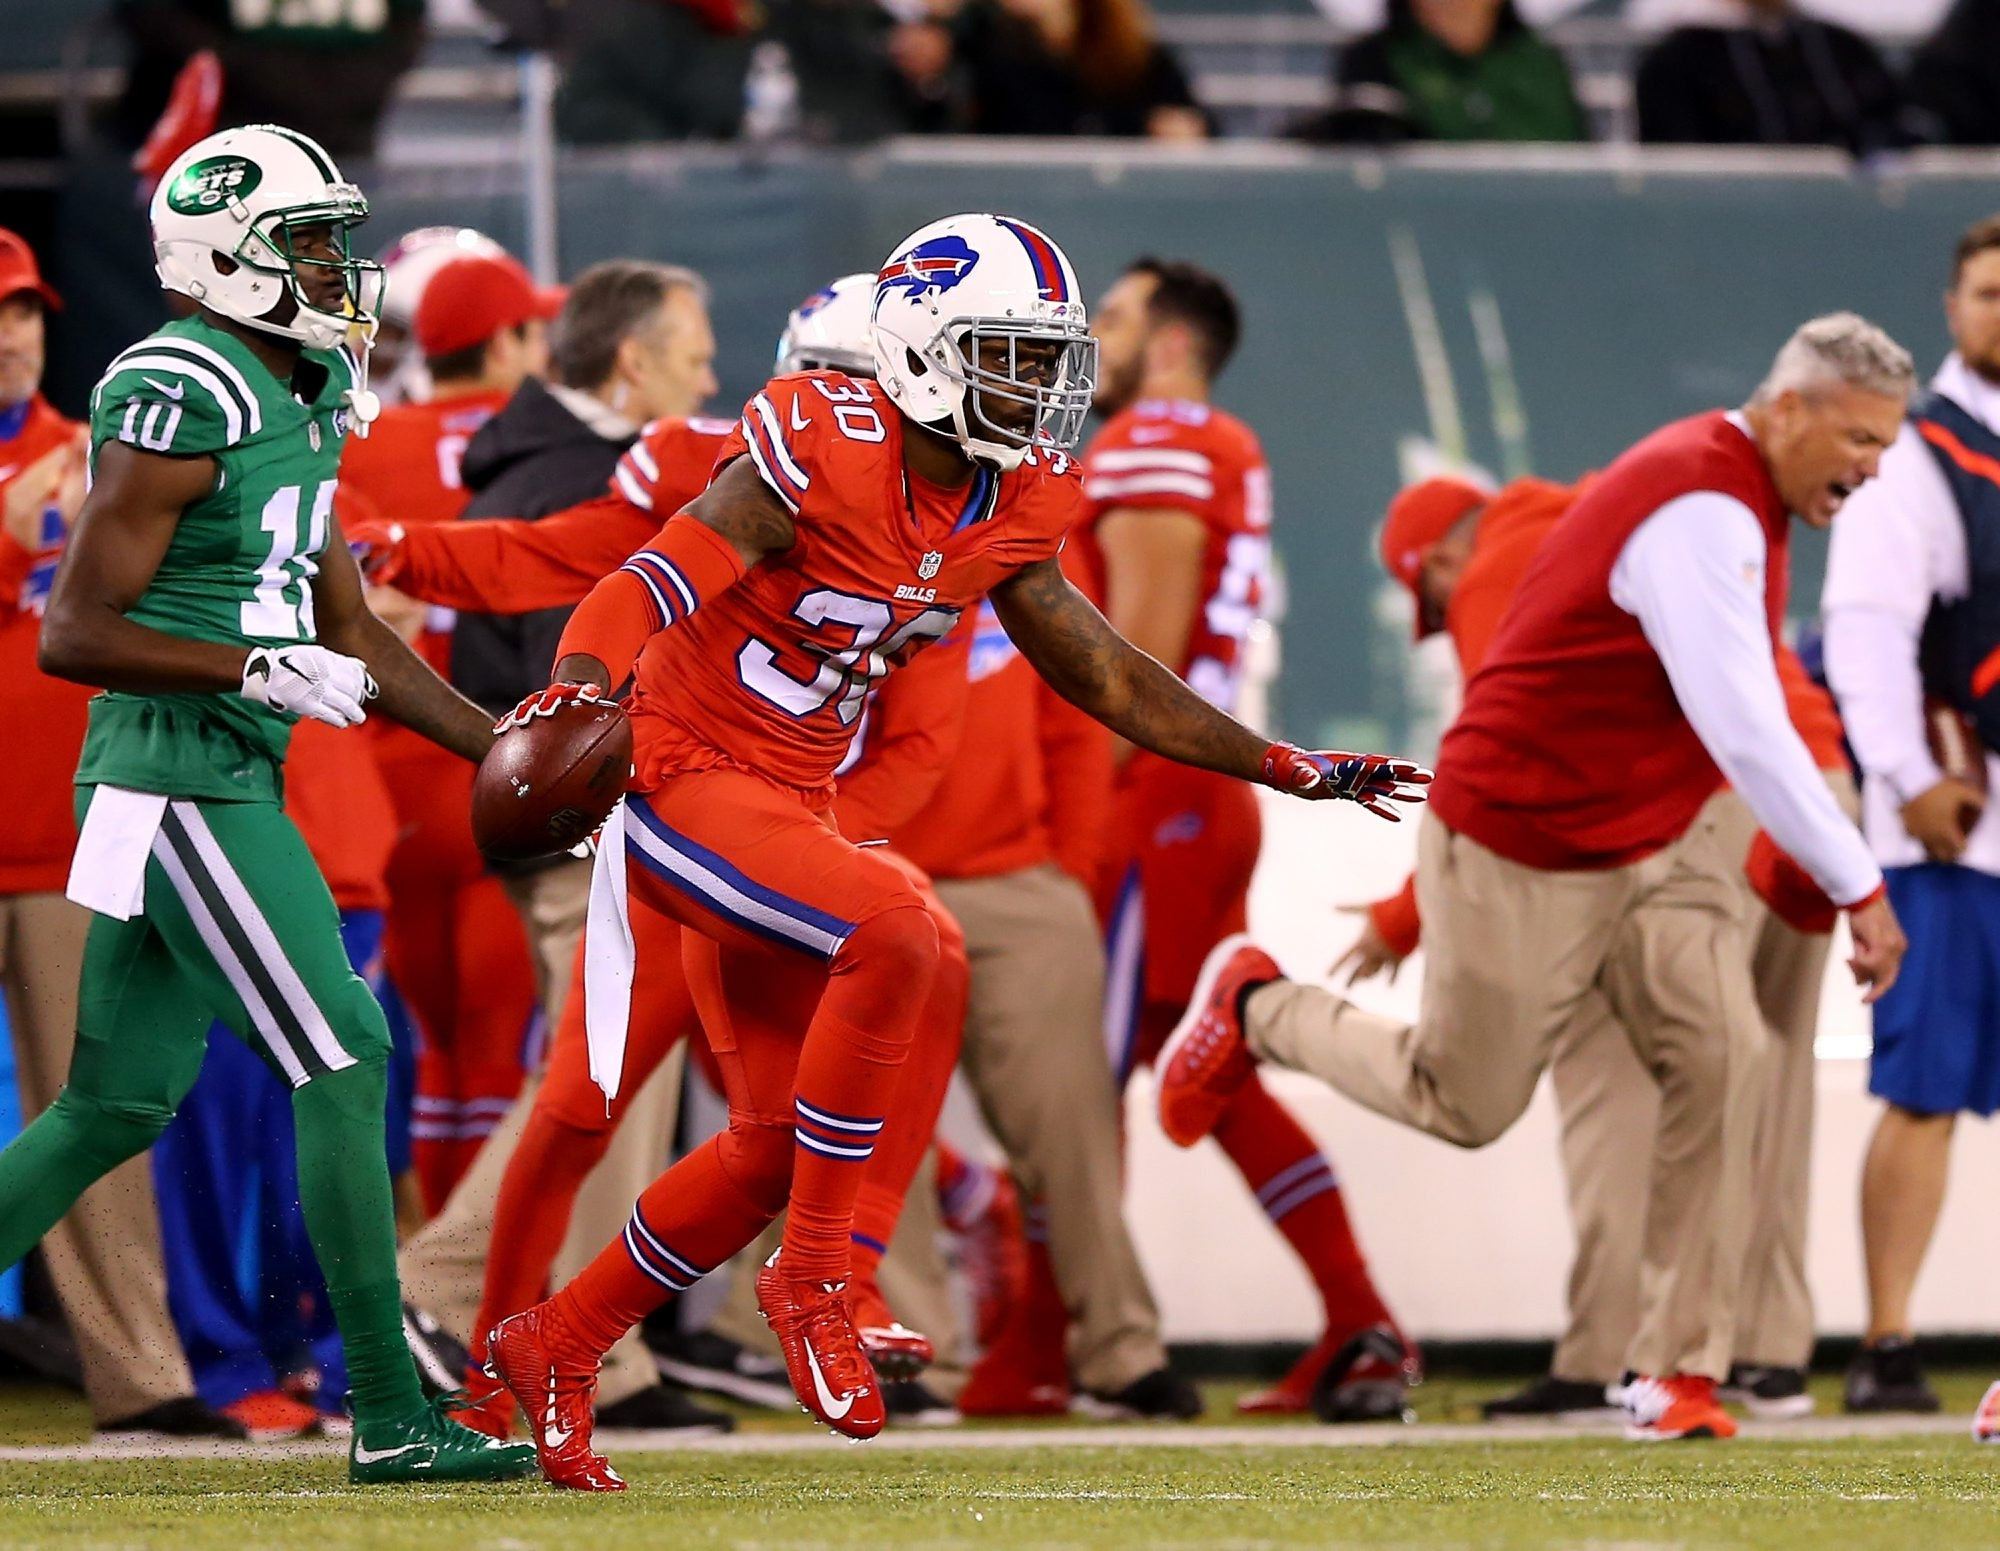 Bills' defensive back Bacarri Rambo (30), shown here against the Jets, played while hurt during Sunday's game with the Cowboys. He was dealing with a shoulder injury.